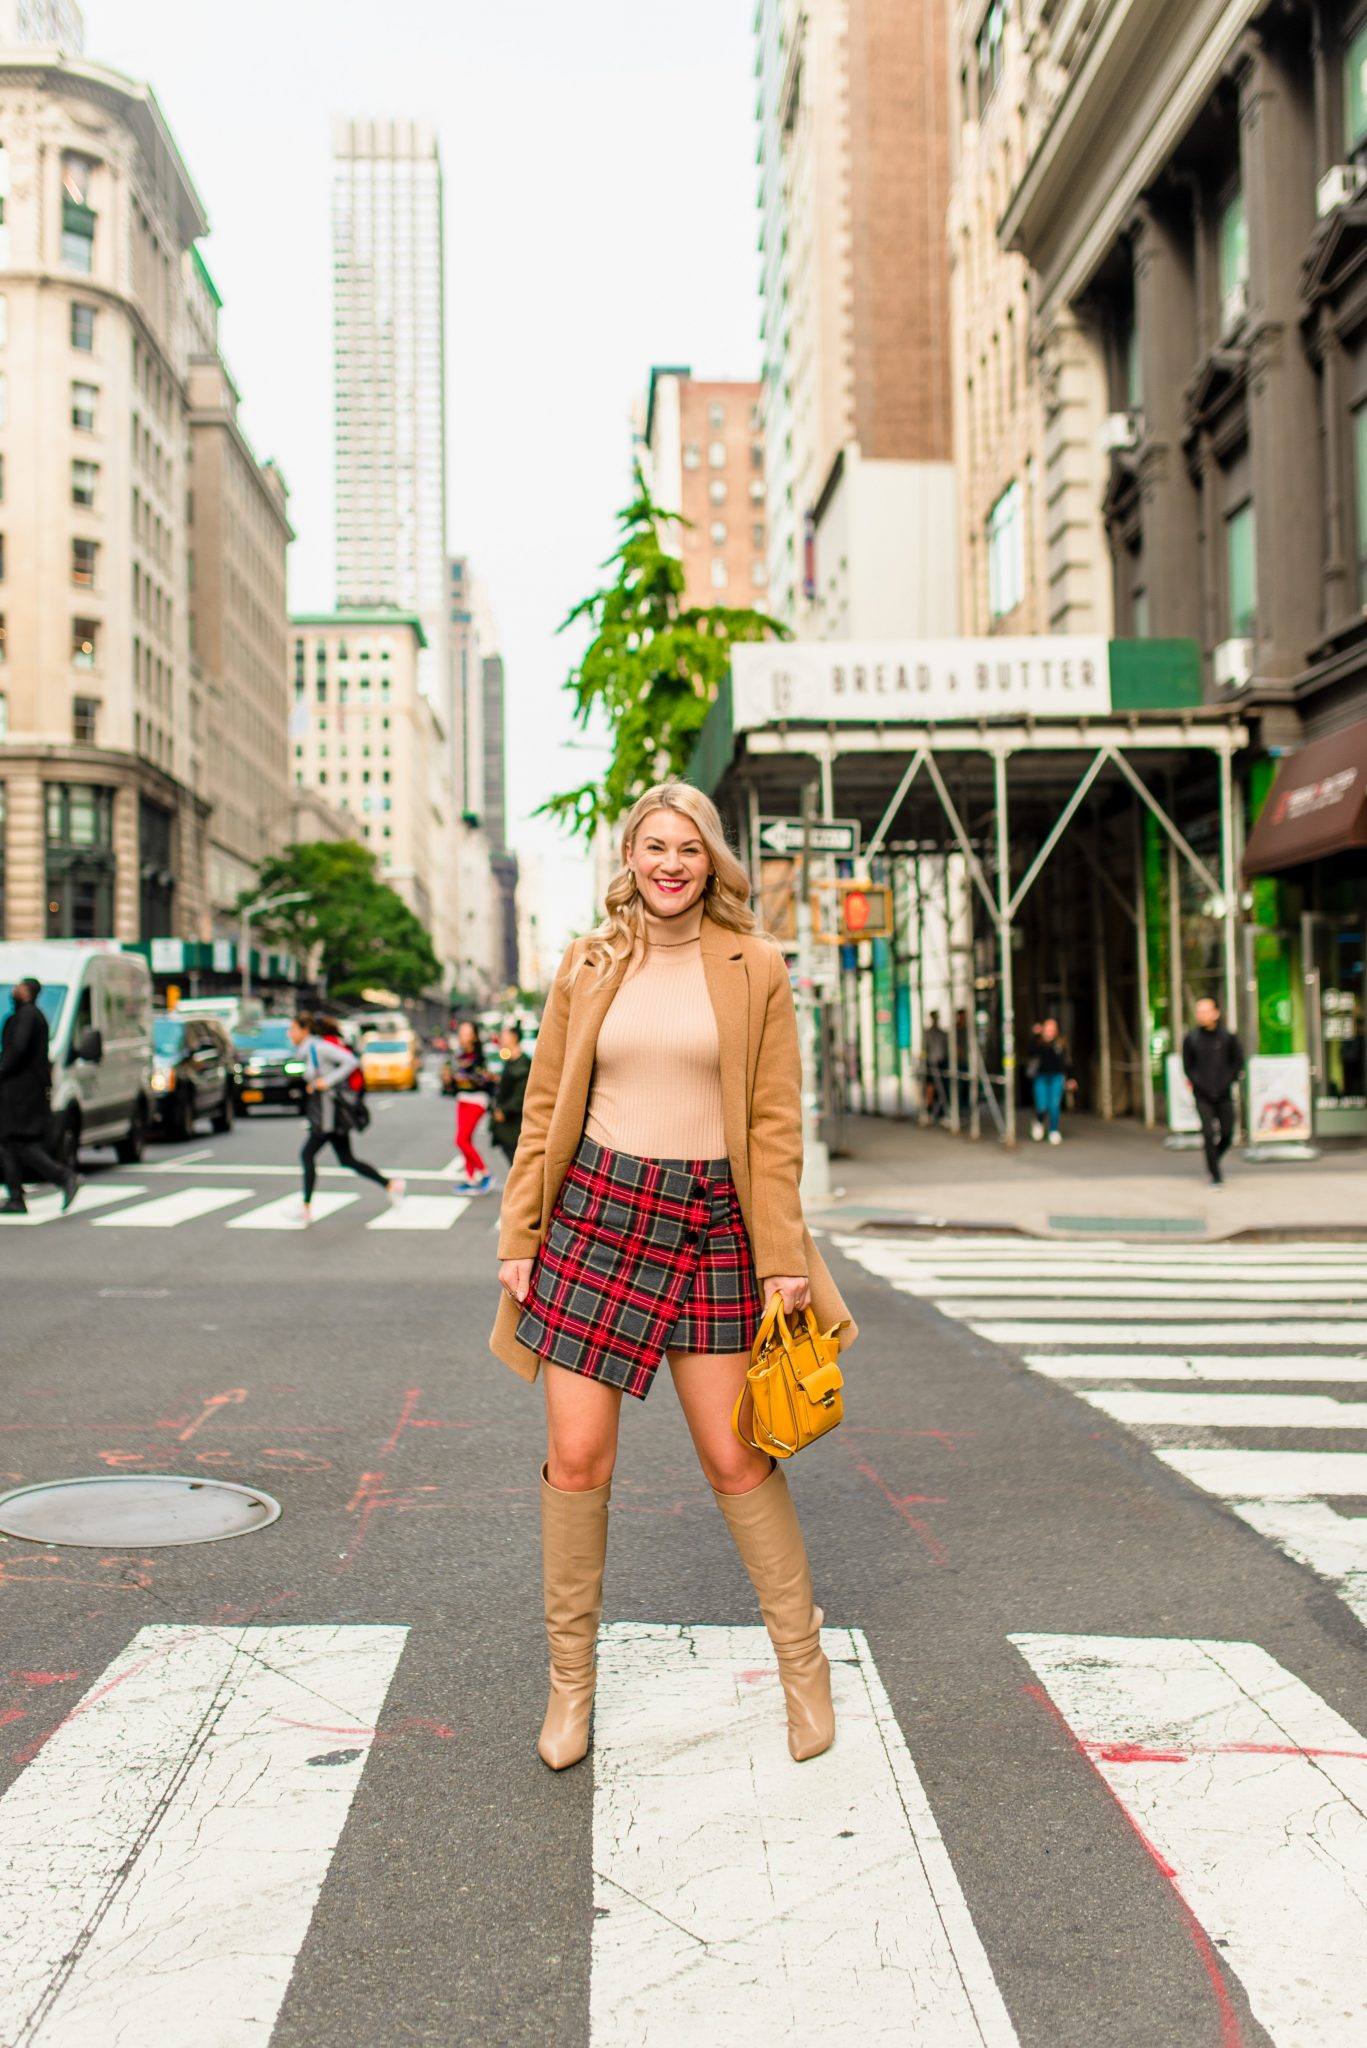 Slouchy Boots by popular Seattle tall fashion blog, Whit Wanders: image of a woman walking outside in Downtown Seattle and wearing a Nordstrom Coat, Forever21 Top, H&M Skirt, Vince Camuto Boots while carrying a Jason Wu tote via Target.